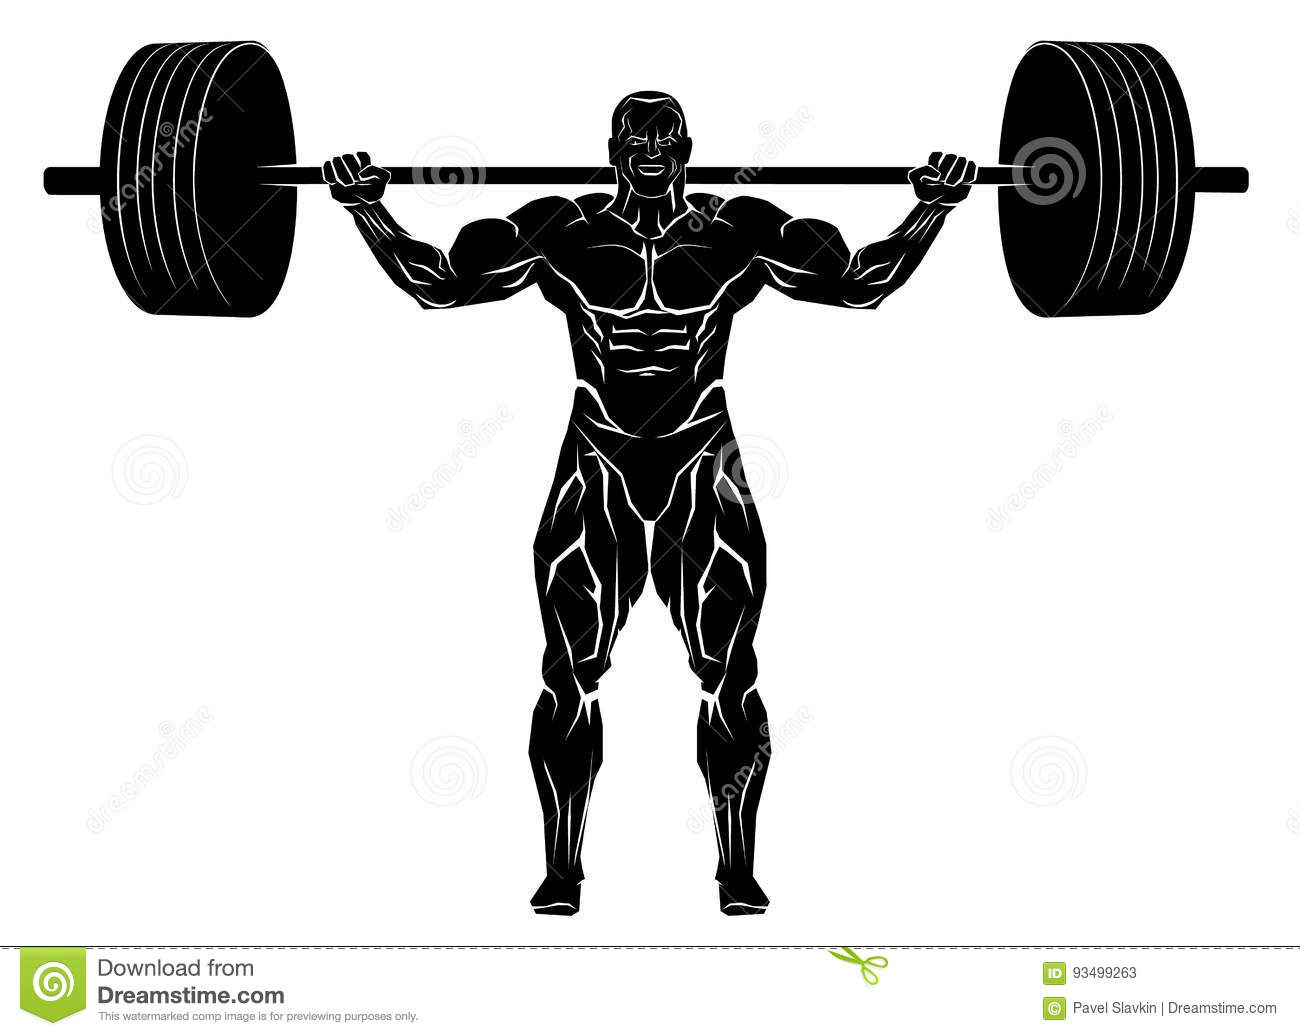 Weightlifter Cartoons, Illustrations & Vector Stock Images